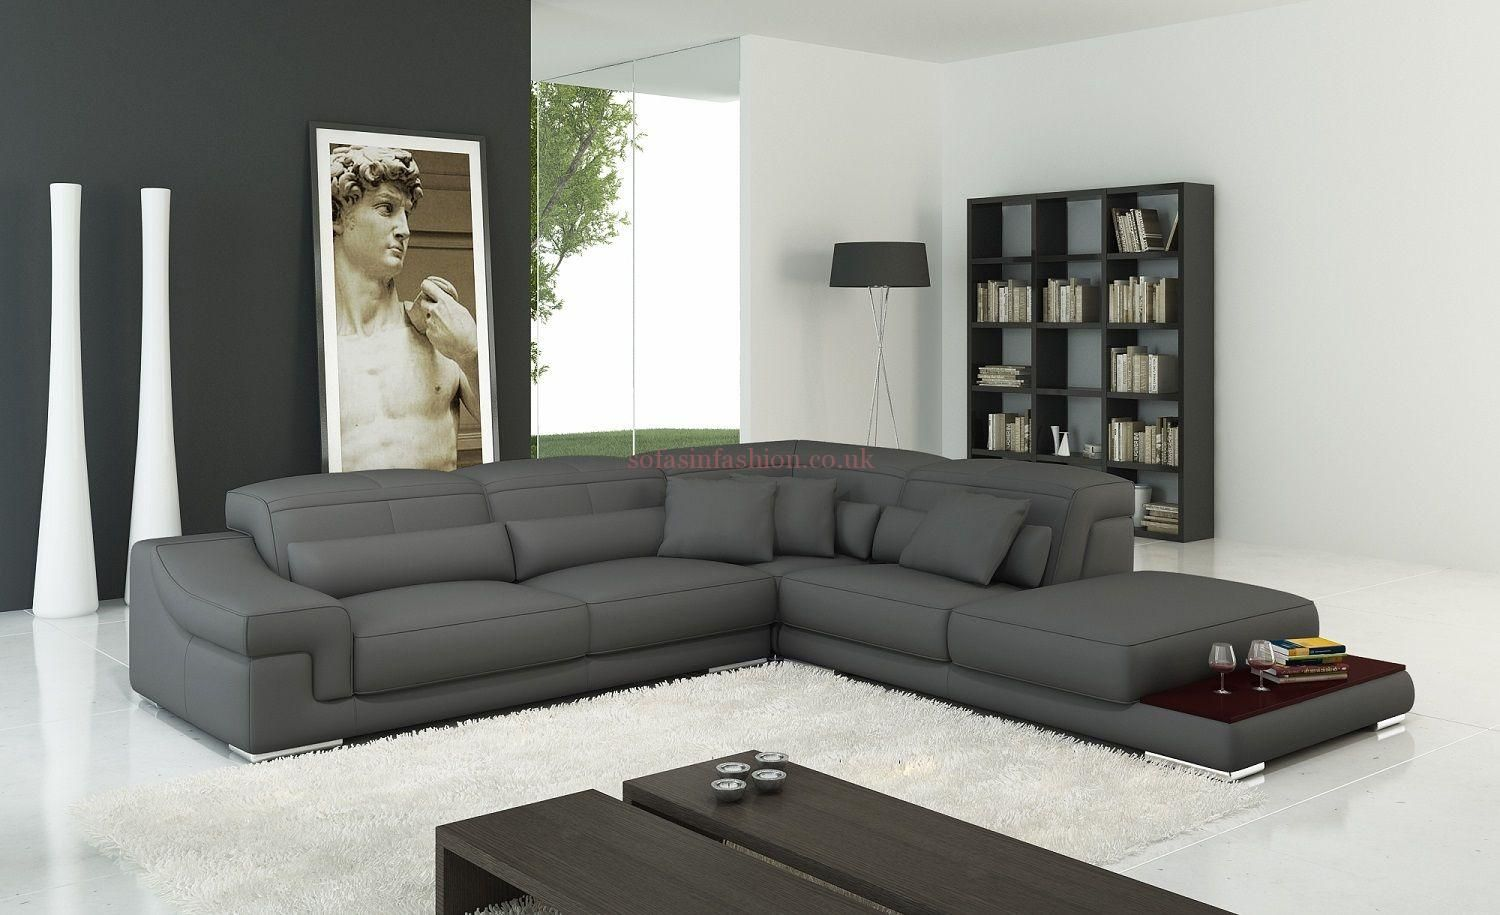 Cool Sofas Uk Good 55 With